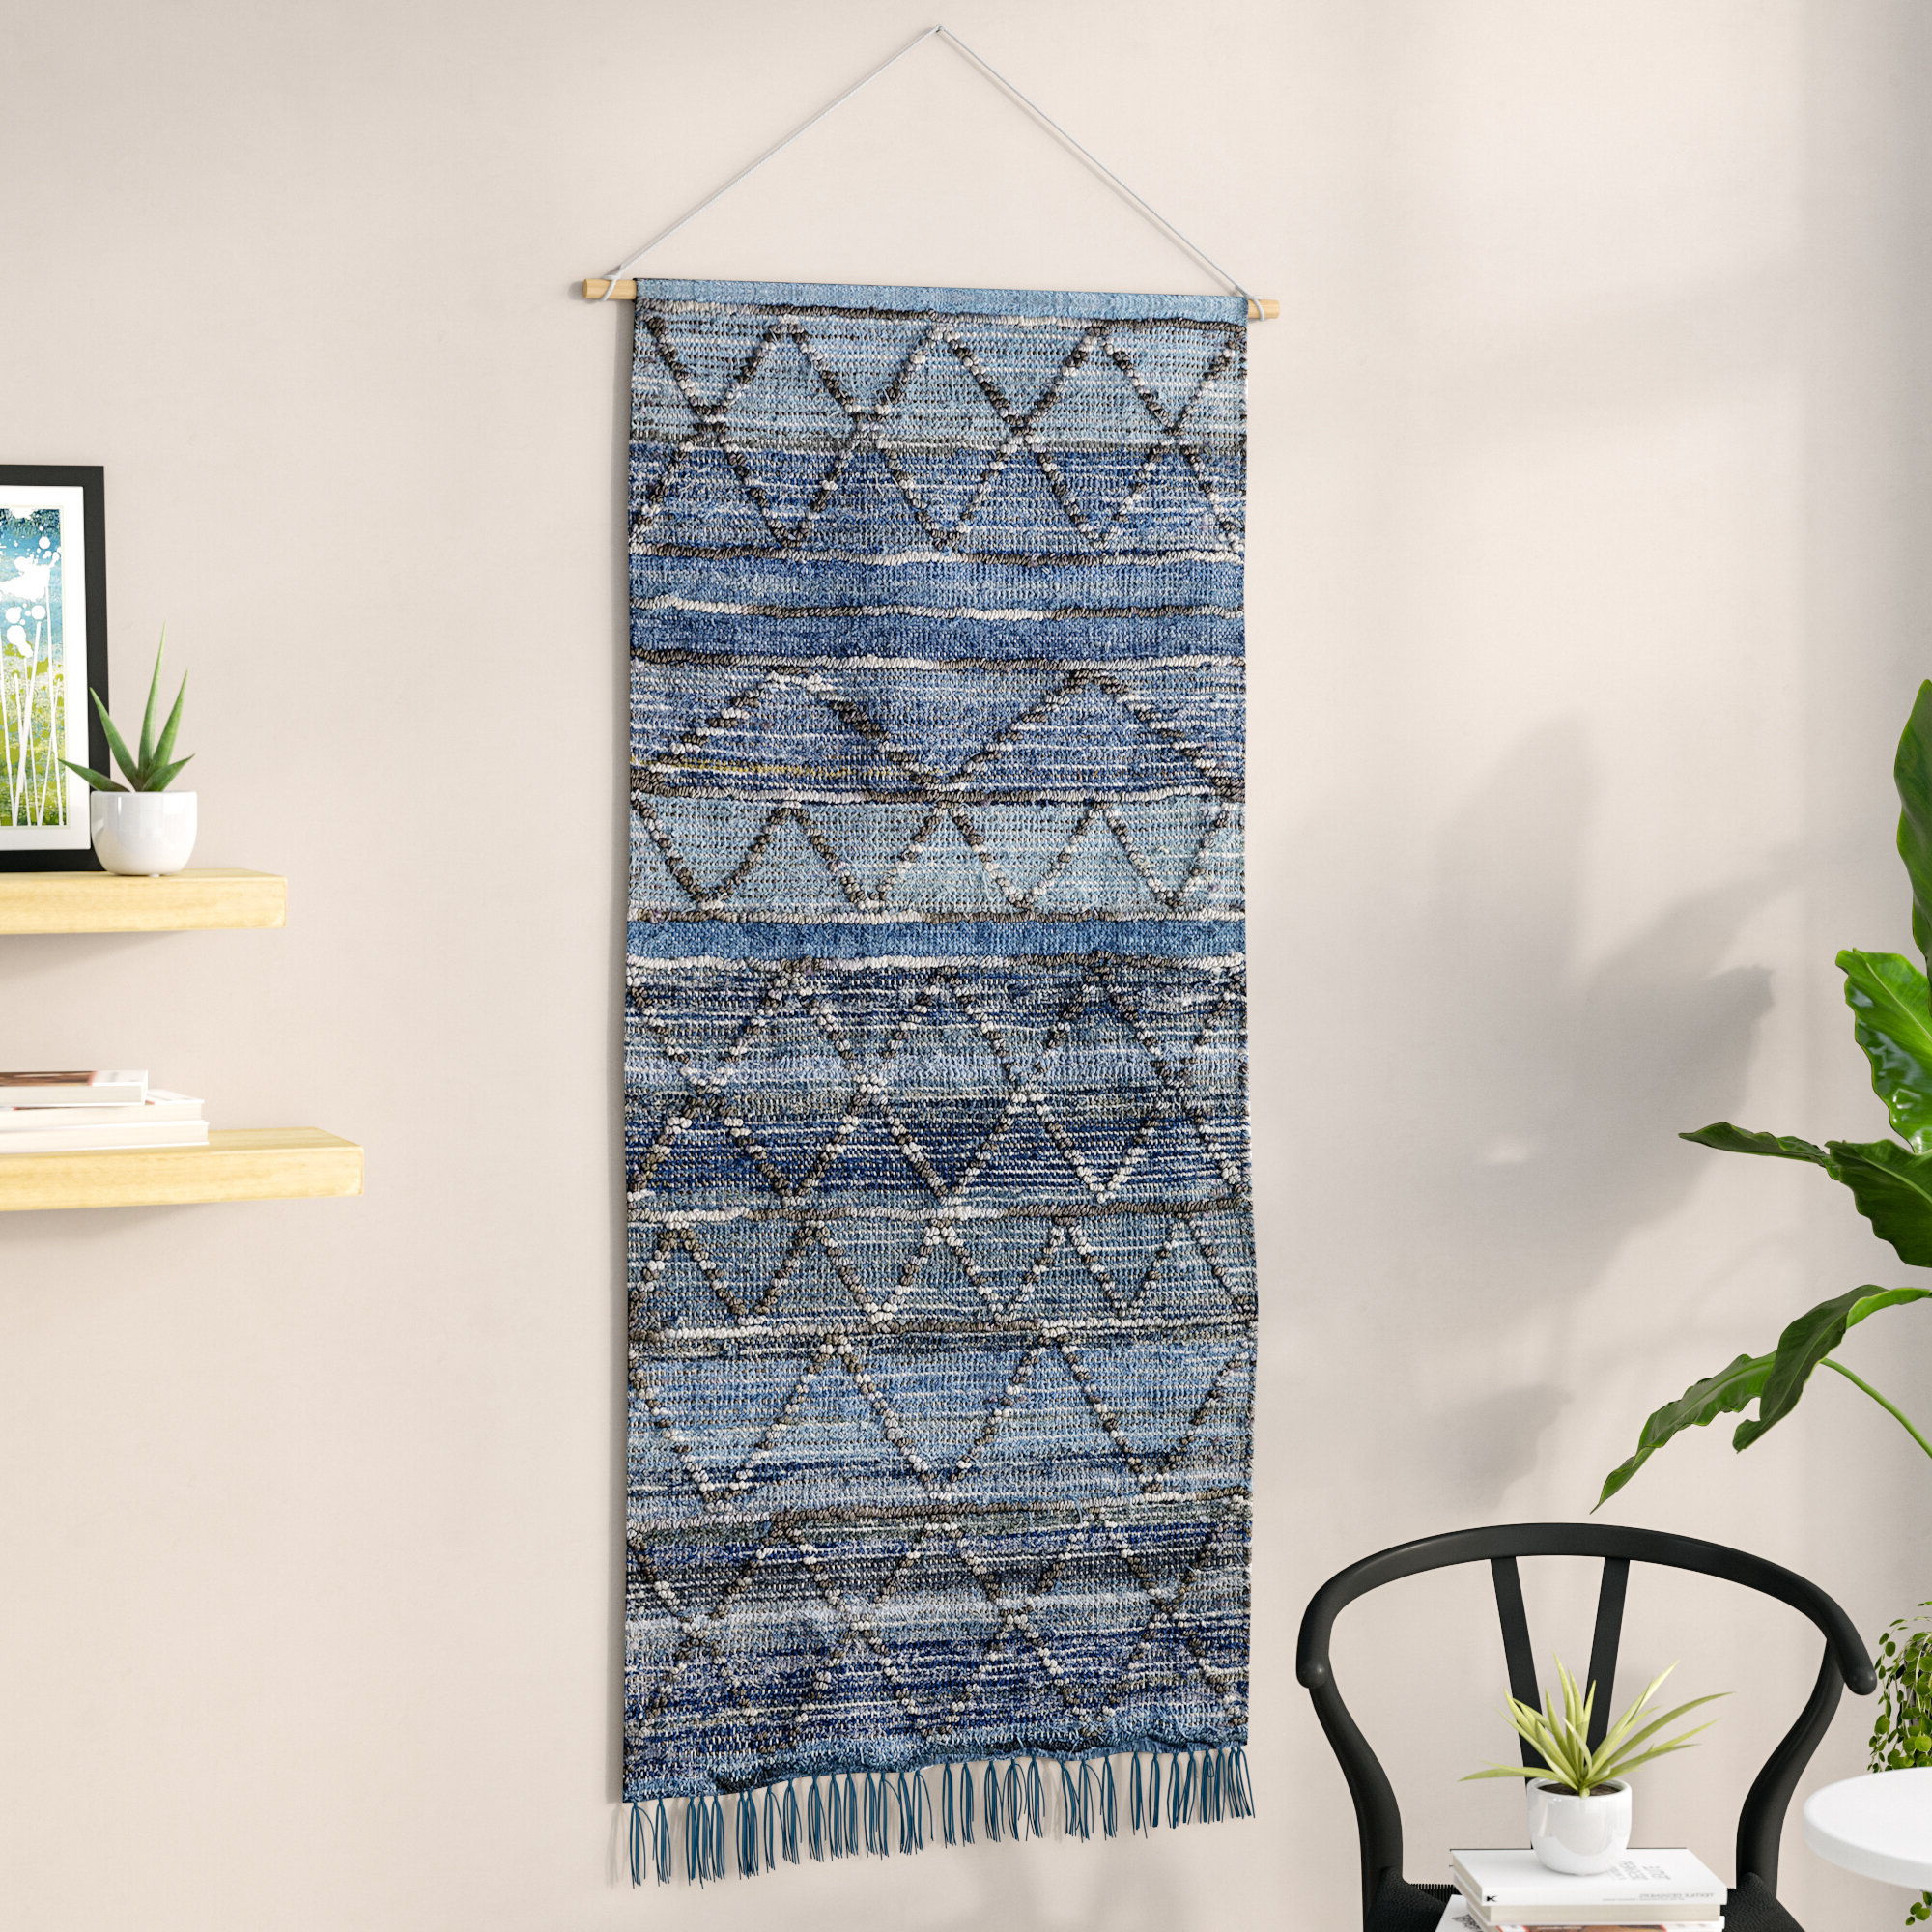 Recent Blended Fabric Ranier Wall Hangings With Hanging Accessories Included Pertaining To Arabic Art Tapestries You'll Love In (View 6 of 20)